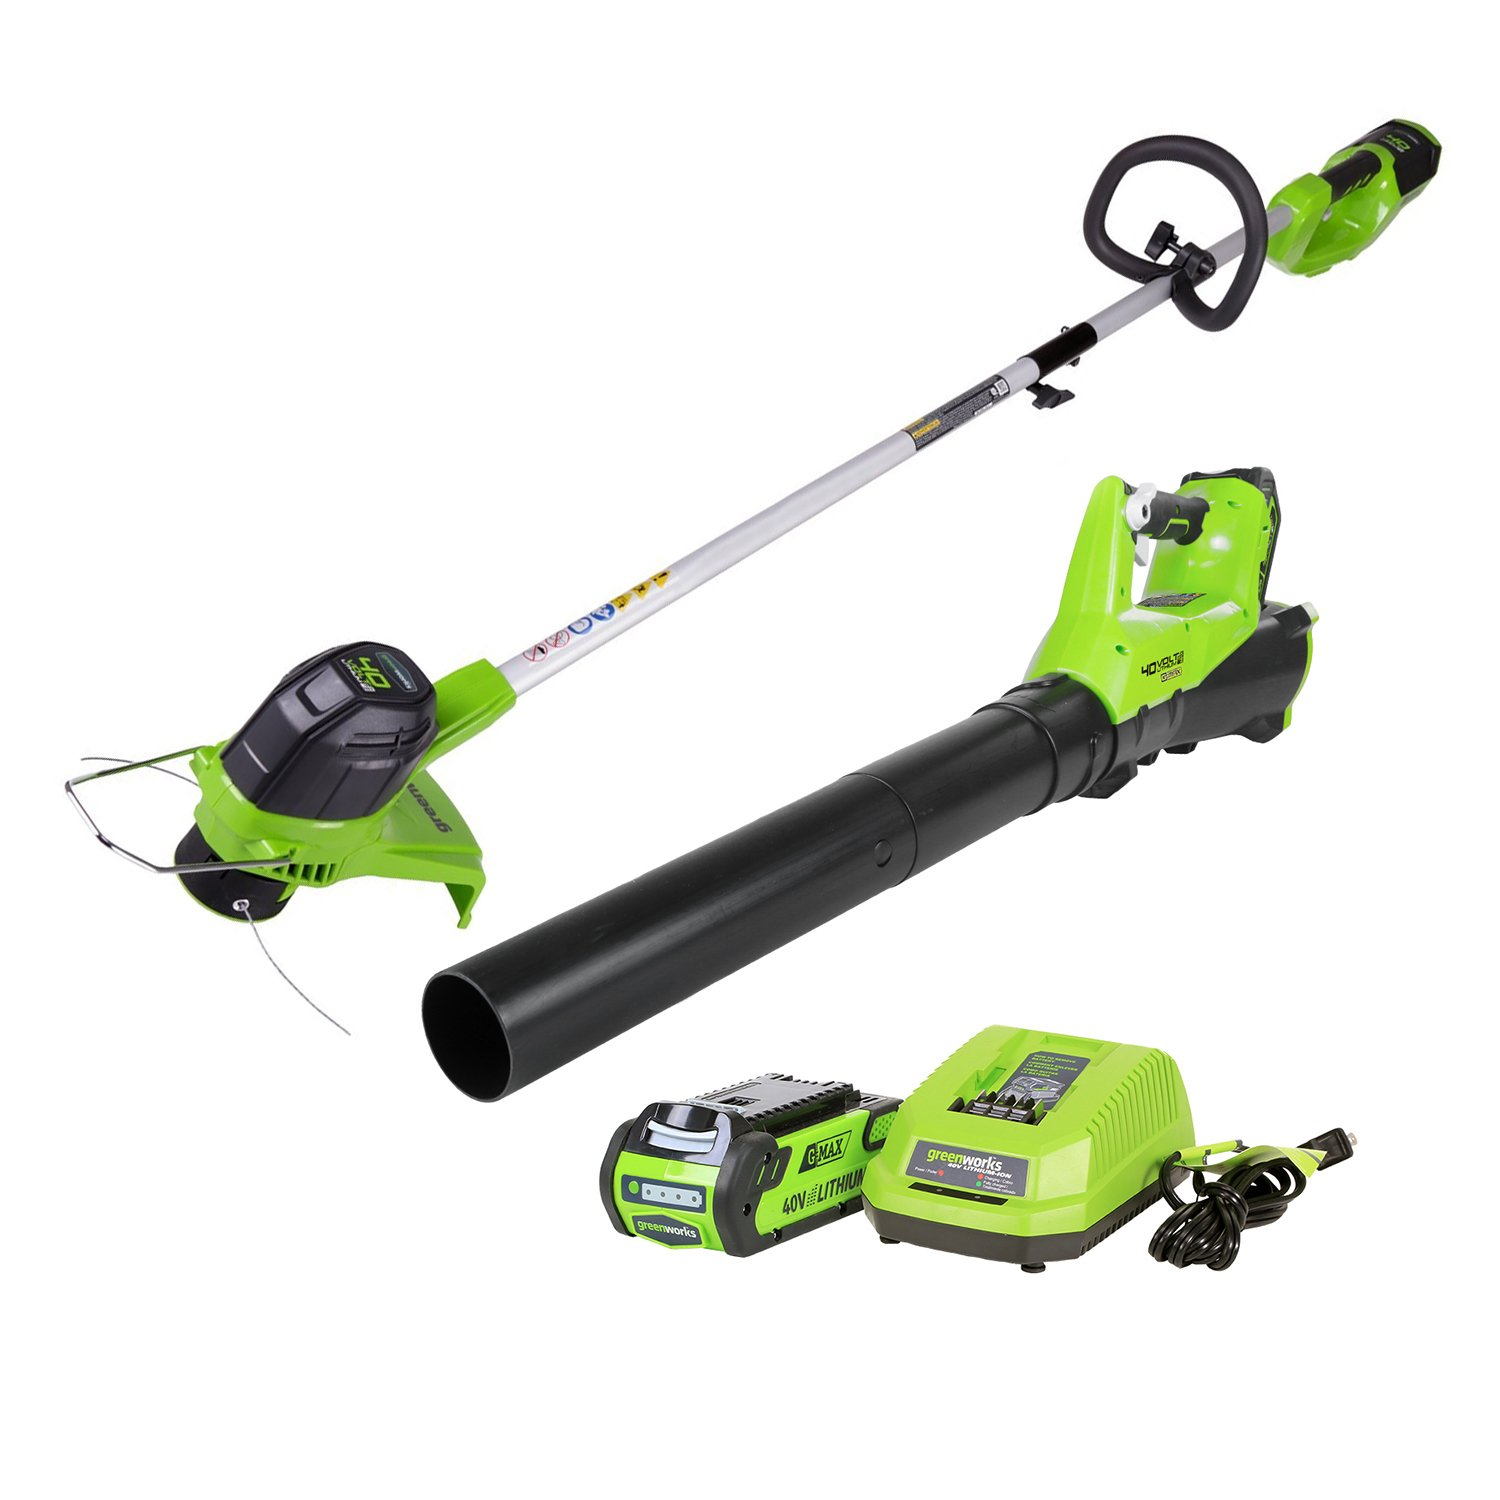 Greenworks 40V Cordless String Trimmer & Blower Combo Pack STBA40B210 by Greenworks